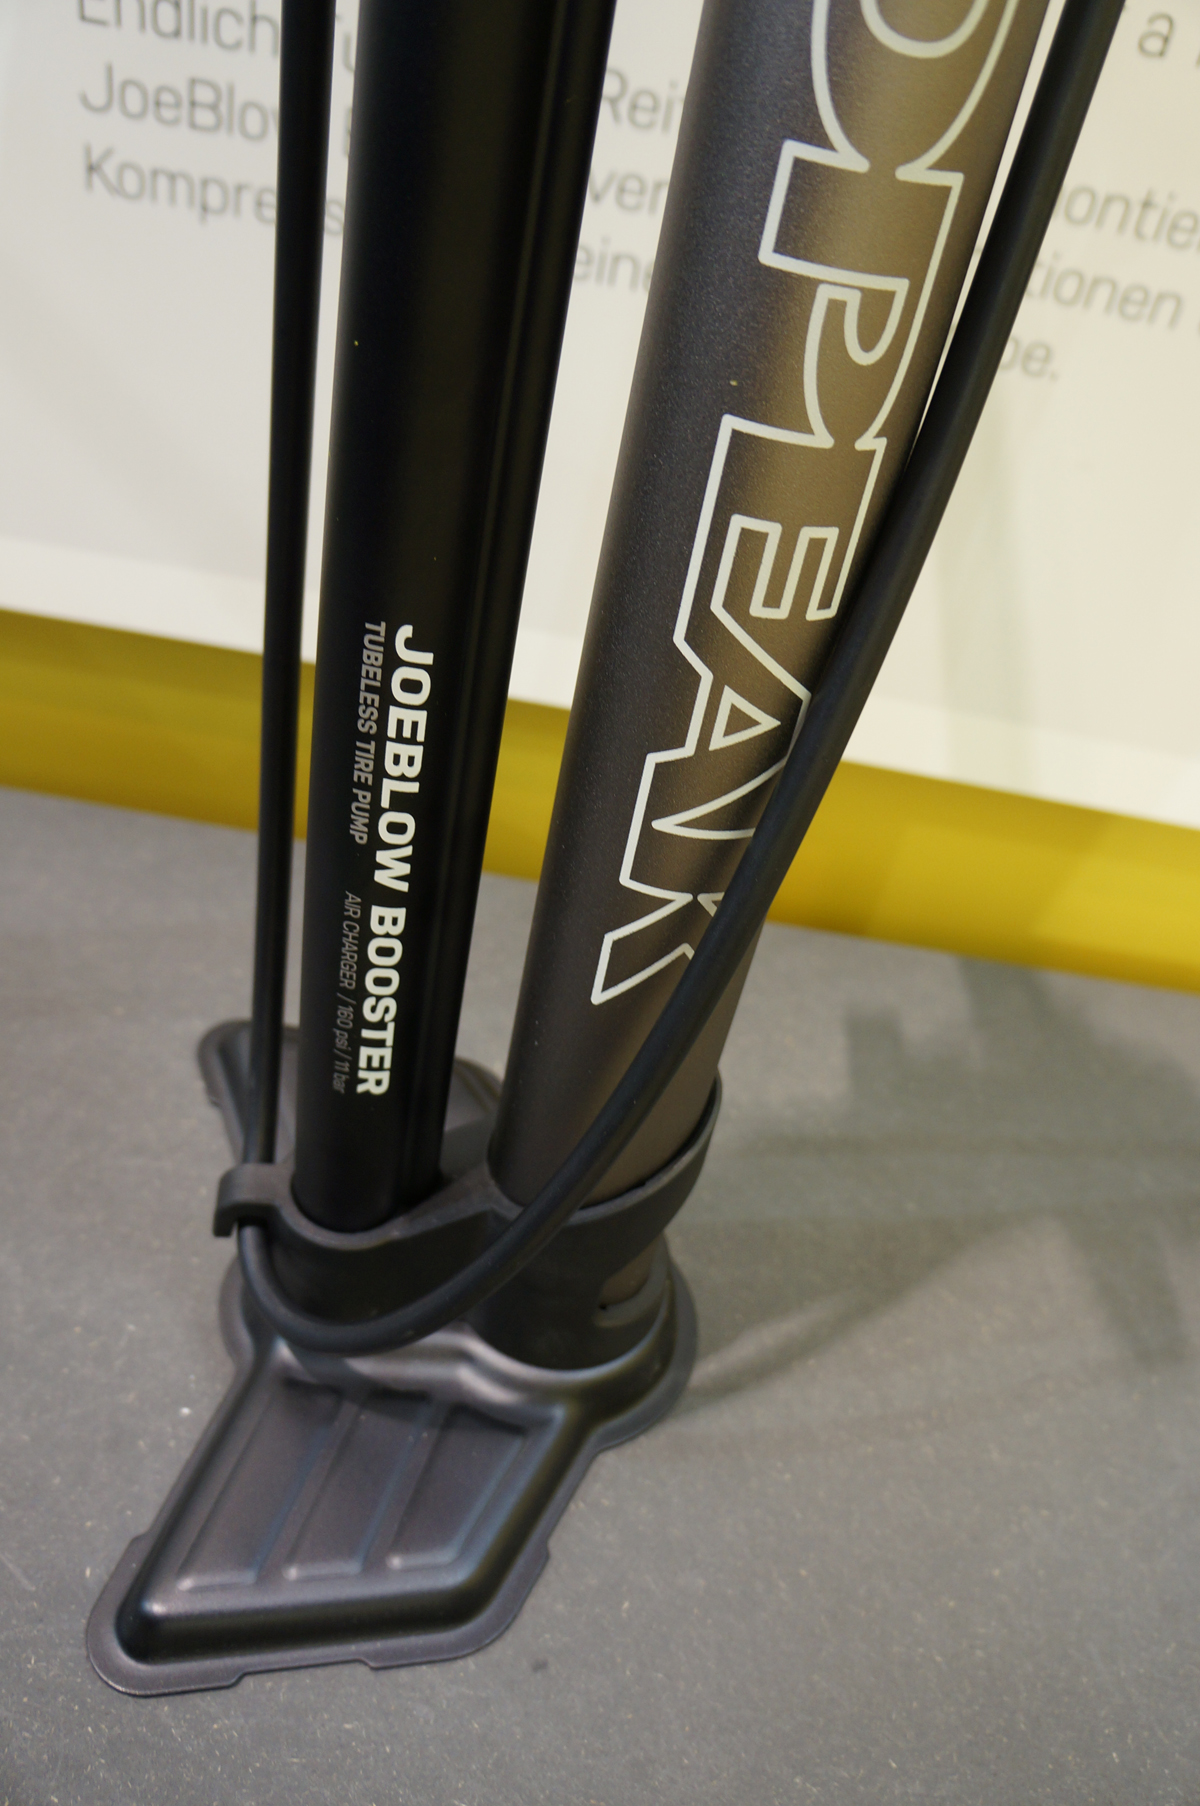 Wonderful Likely To Be The Most Talked About Is The New Joe Blow Booster. Not Exactly  Breaking New Ground, The Booster Uses A Very Similar Design To The  Bontrager ...